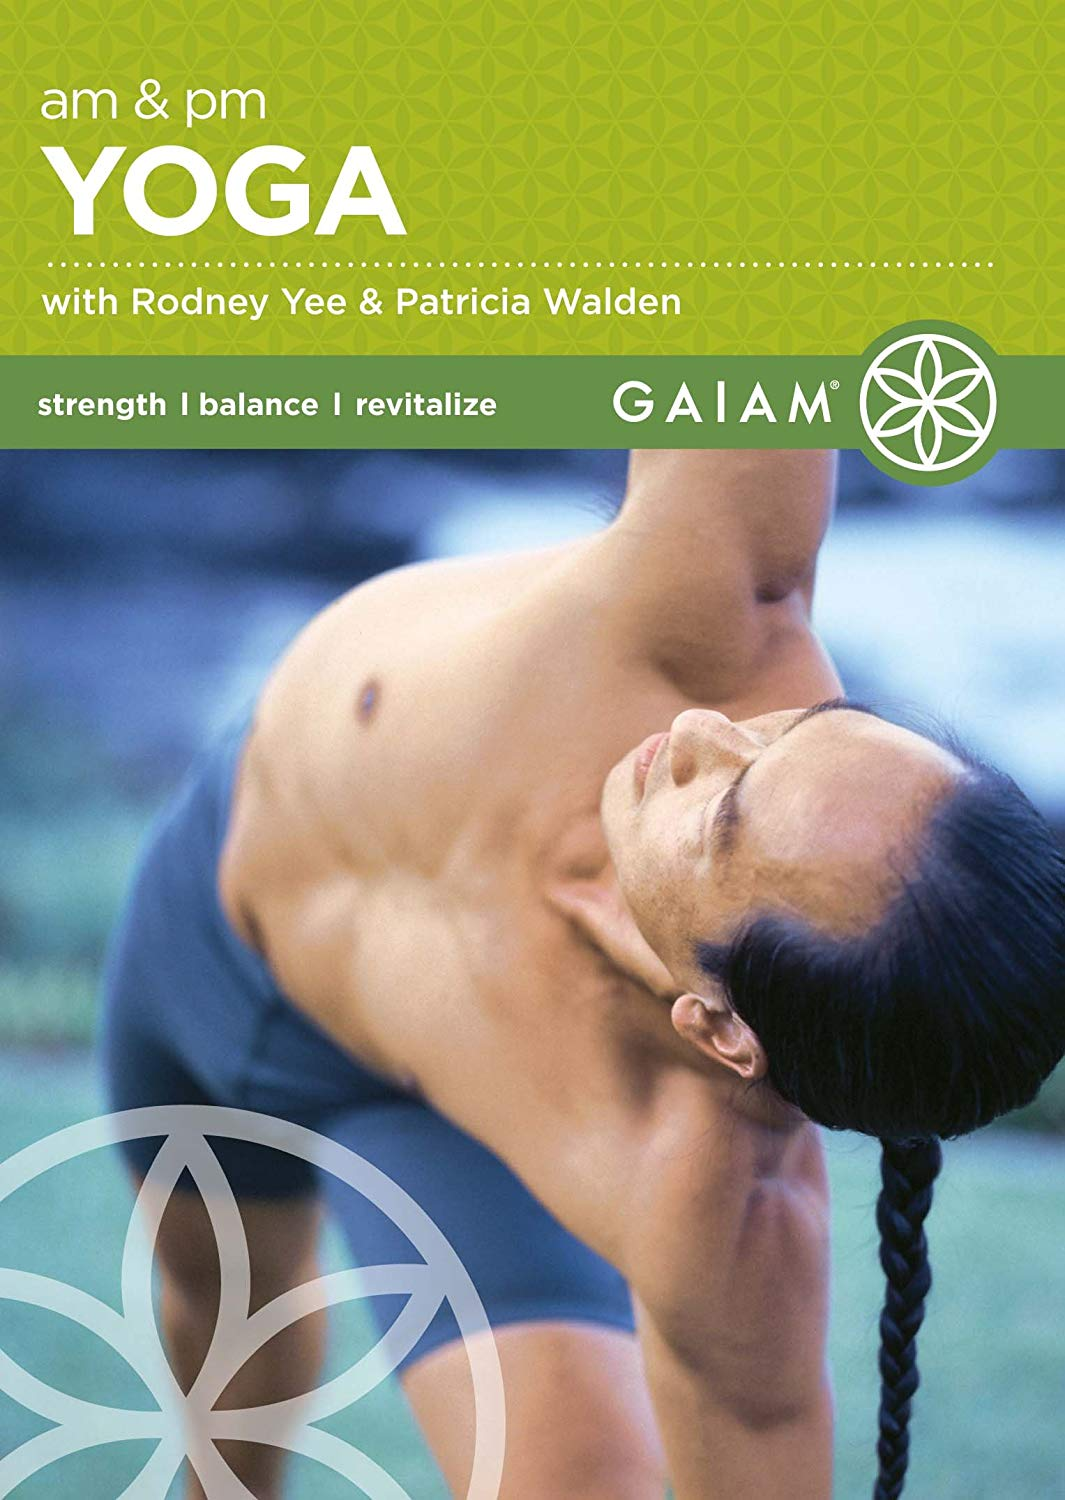 [DVD] A.M. and P.M. Yoga for Beginners - Rodney Yee and Patricia Walden present this twice-a-day yoga workout designed for busy beginners. Rodney Yee presents a daily 15-minute morning workout designed to increase circulation, improve mobility, and bring clarity to your mind, while Patricia Walden leads a 20-minute evening routine designed to quiet the mind after the stress of the day.